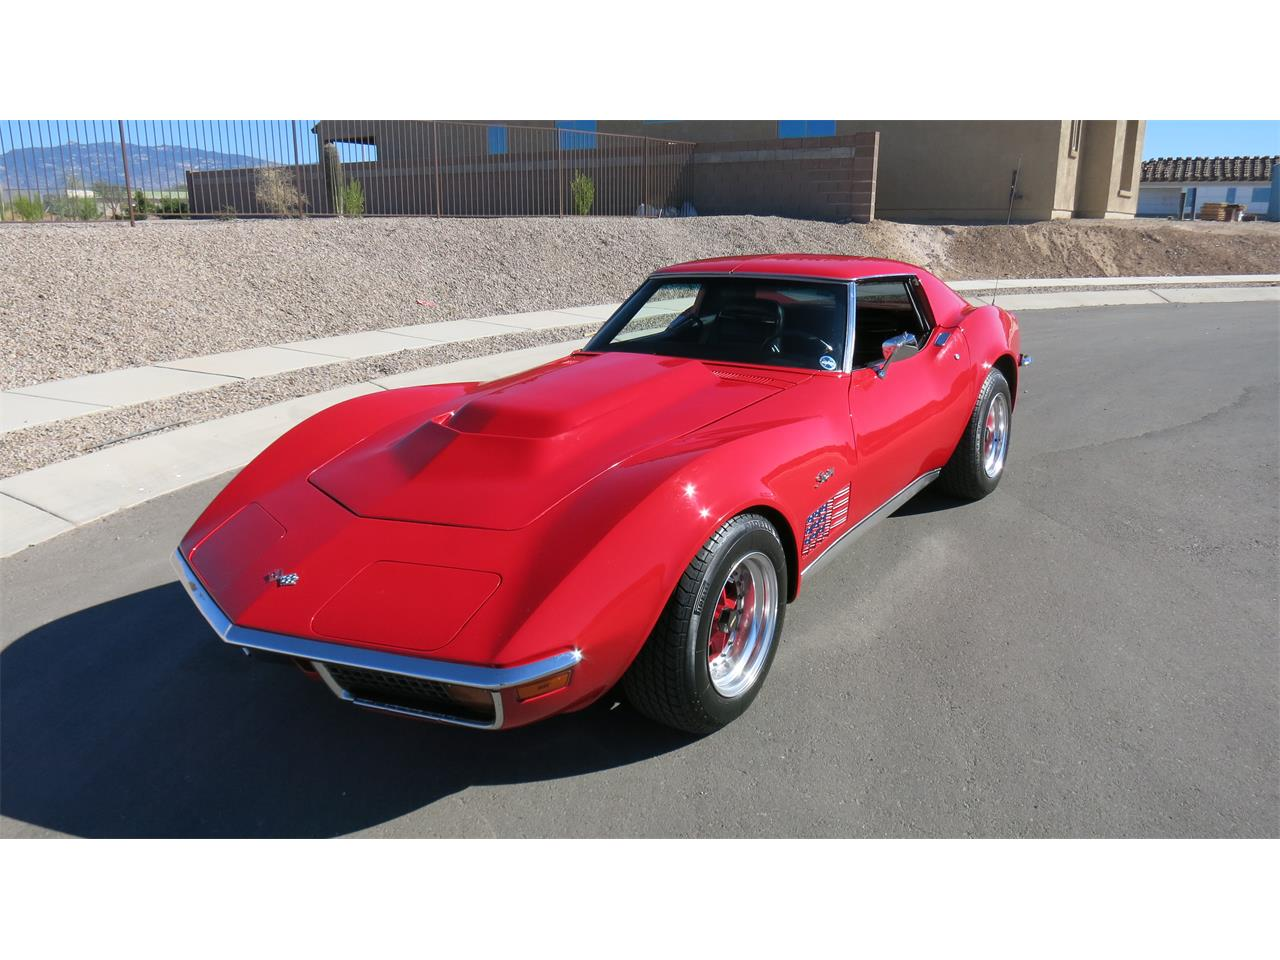 Large Picture of Classic 1972 Chevrolet Corvette - $25,000.00 Offered by a Private Seller - OCSF